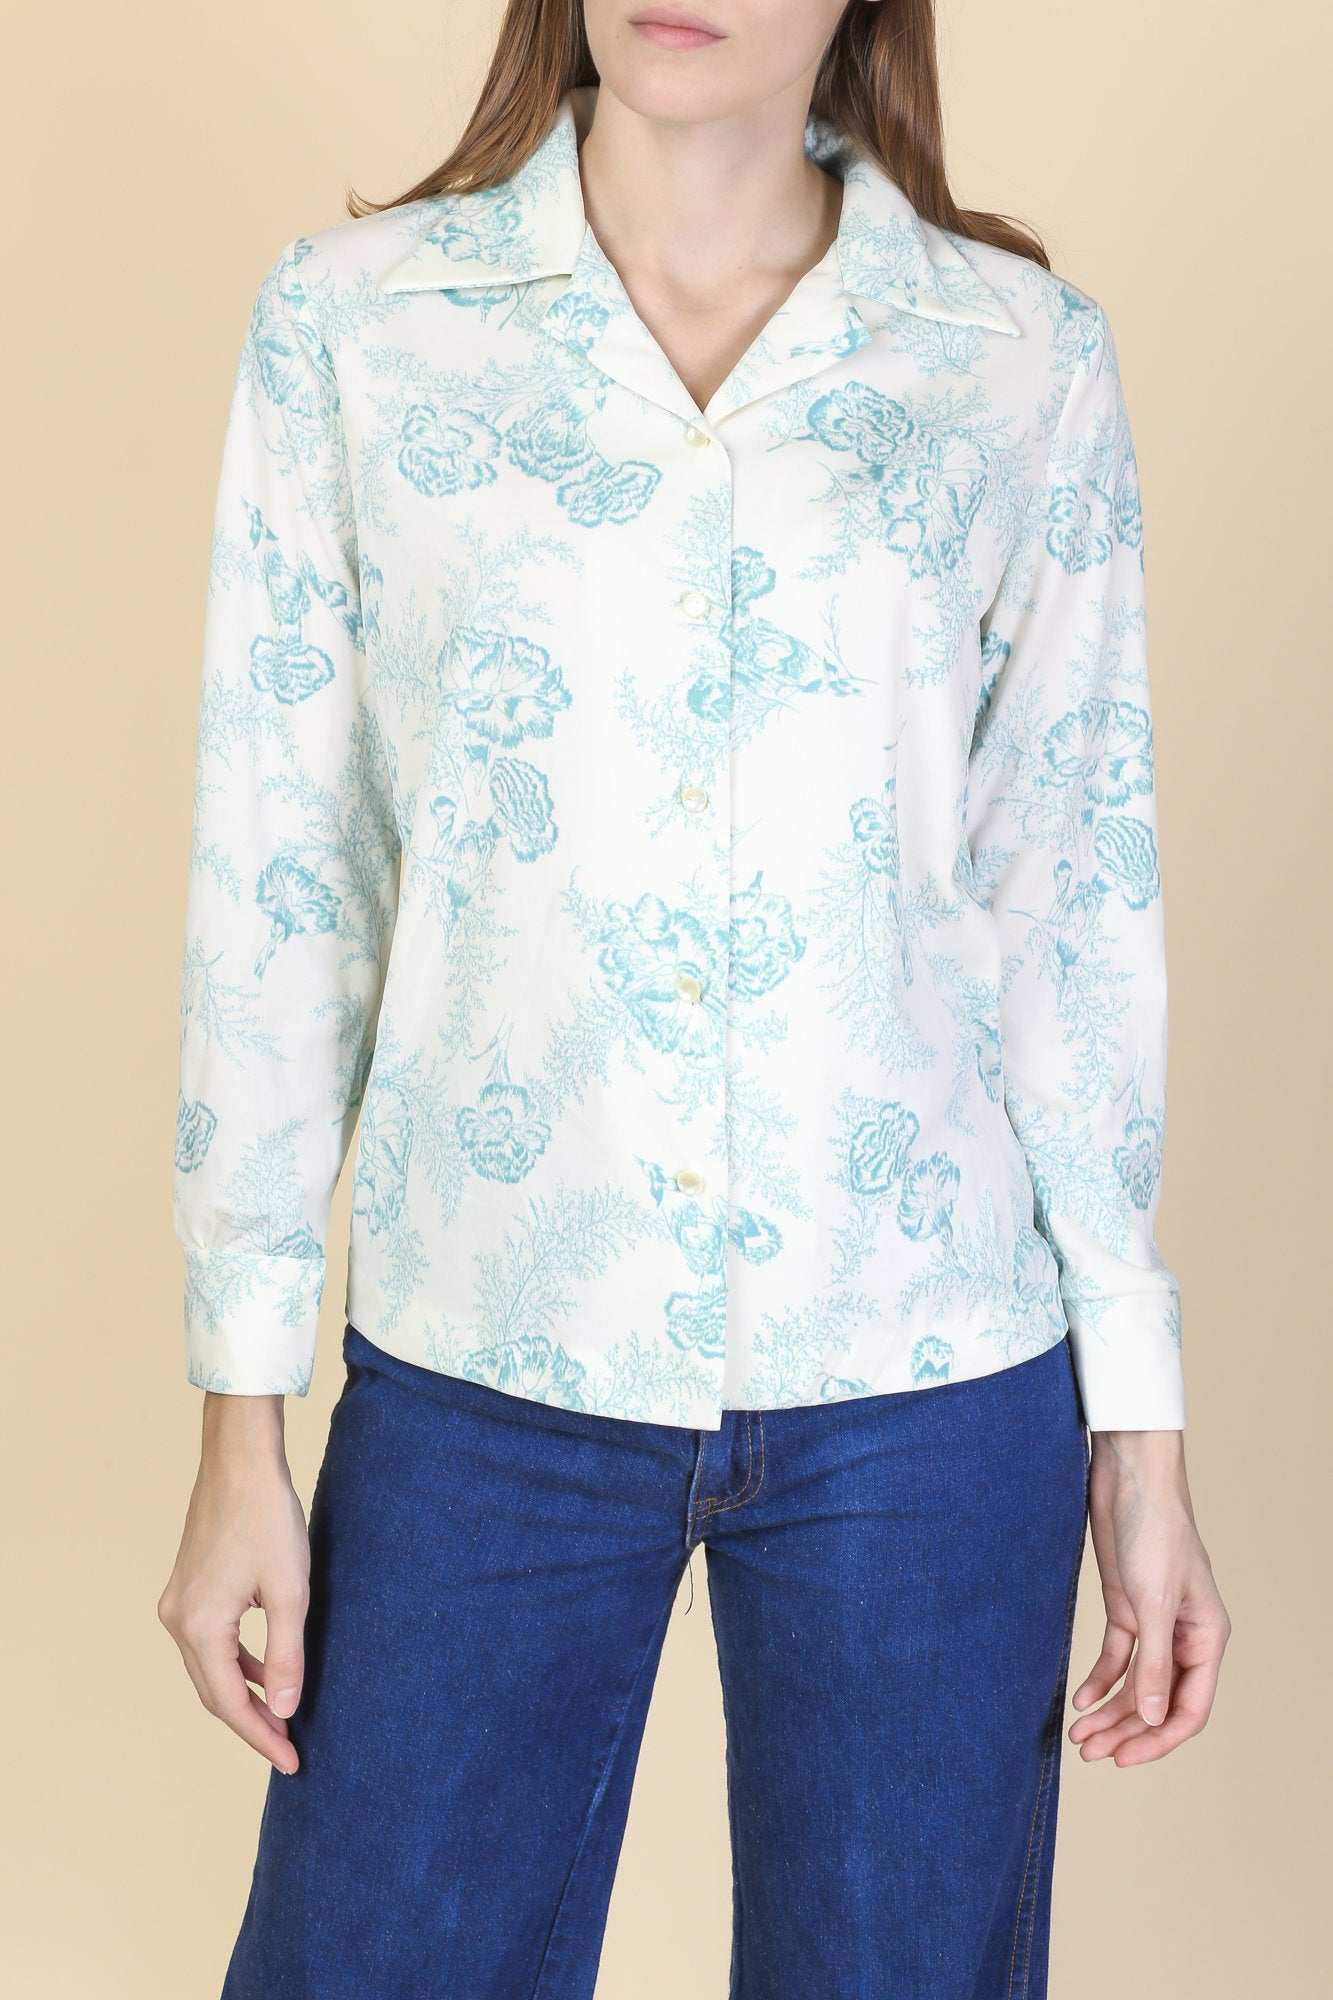 70s Floral Collared Shirt - Small